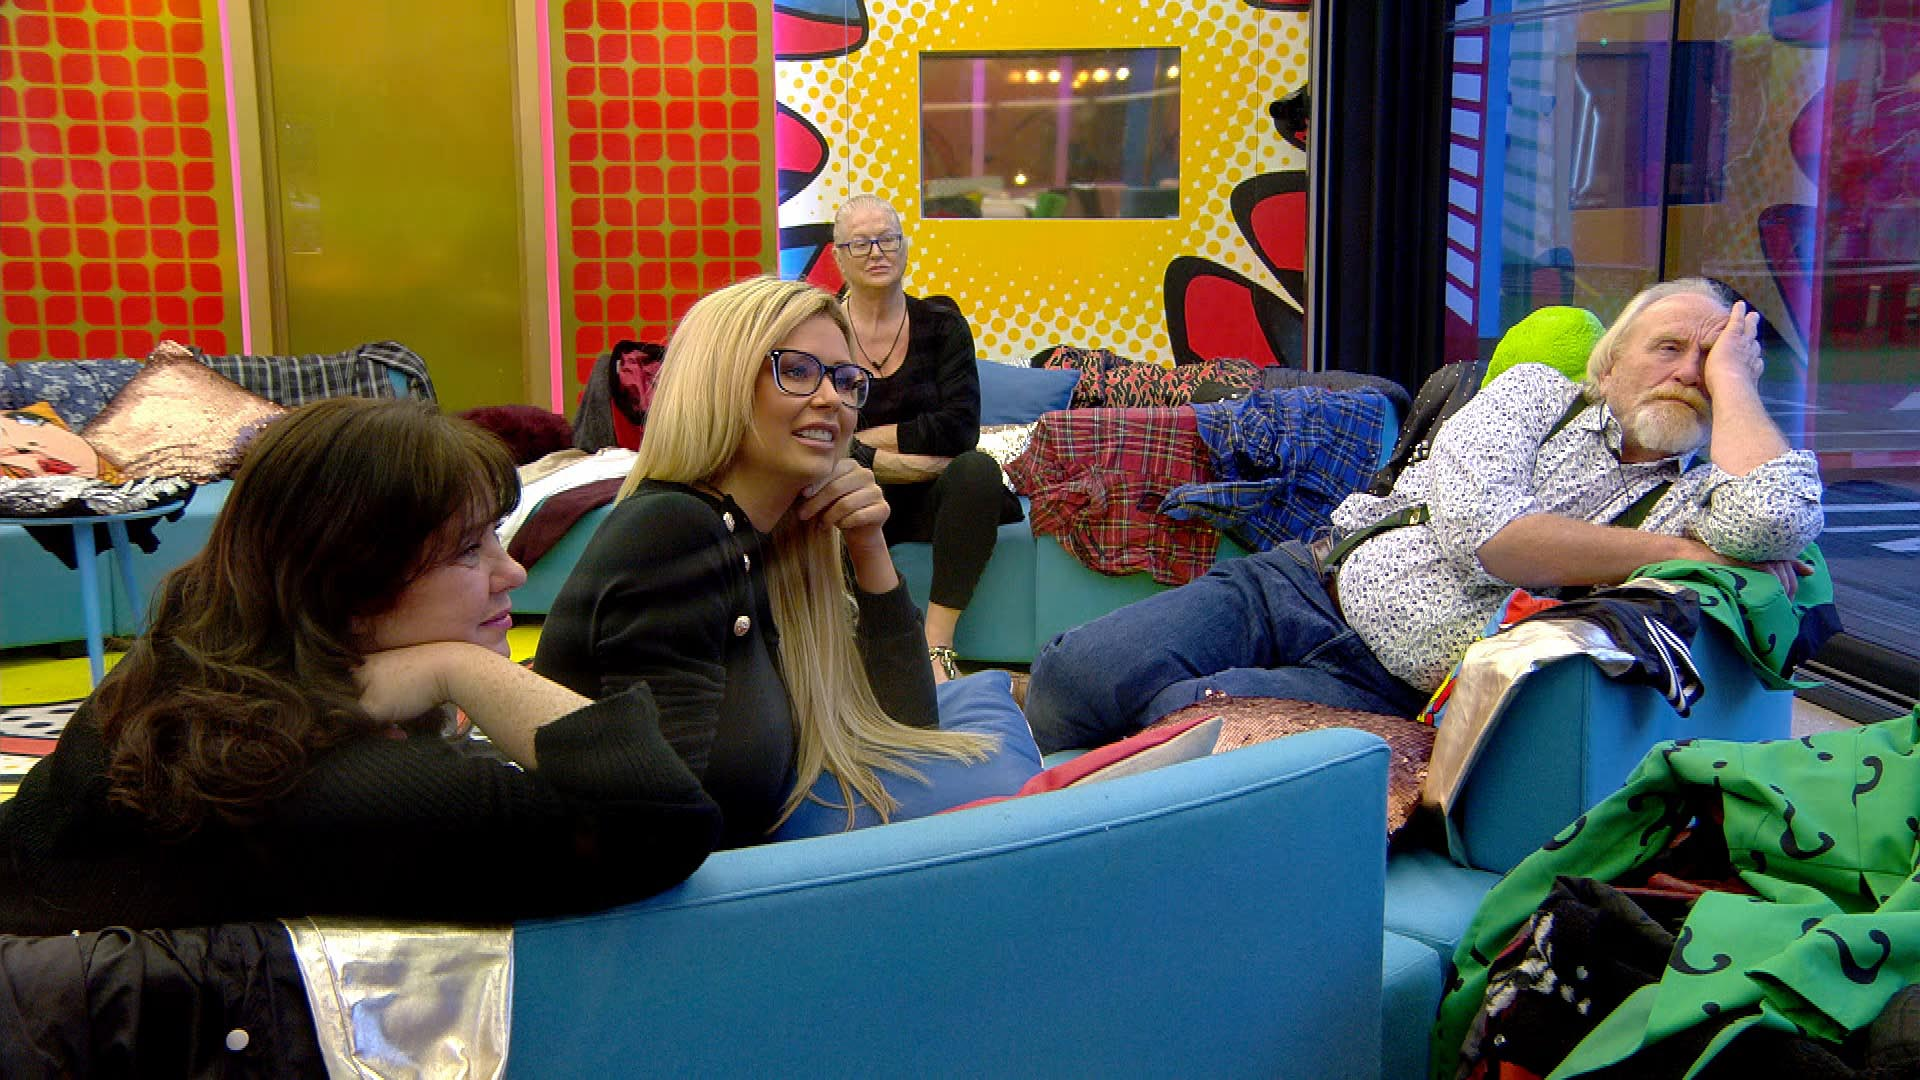 Day 31: HIGHLIGHTS: John runs out of underwear and Housemates discuss kim.